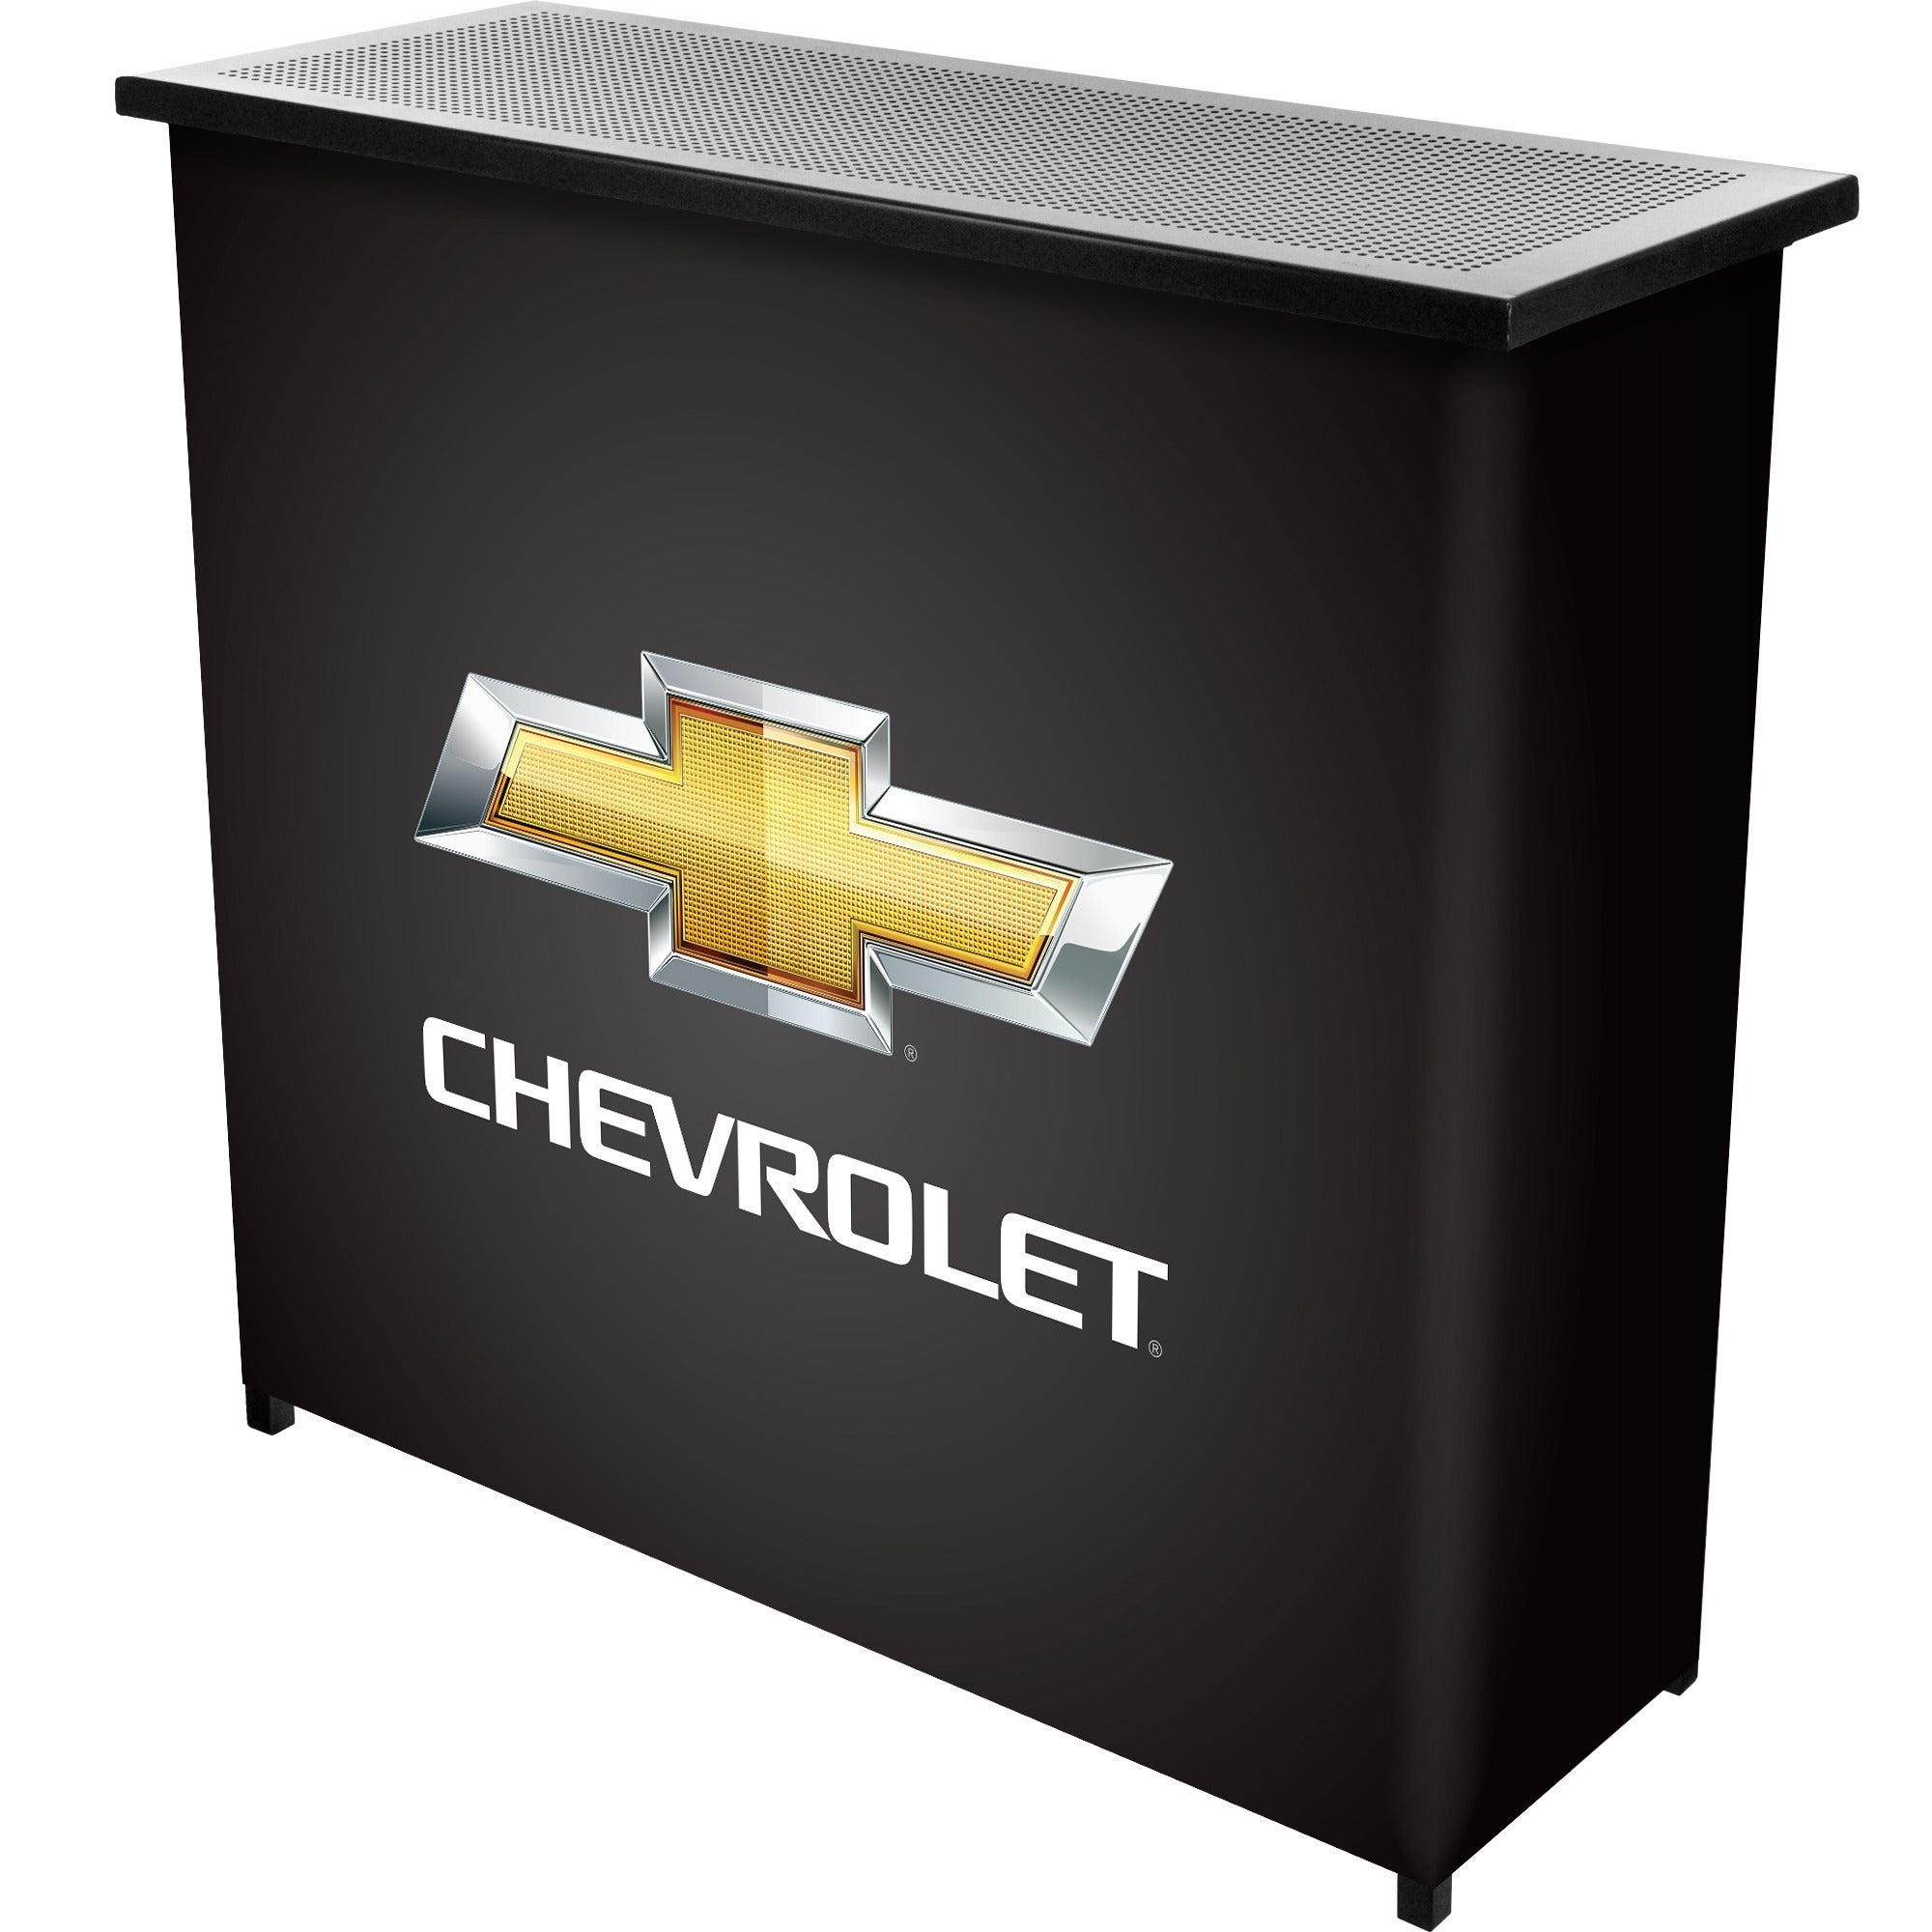 Chevrolet Portable Bar with Case (39L x 15W x 36H), Grey ...